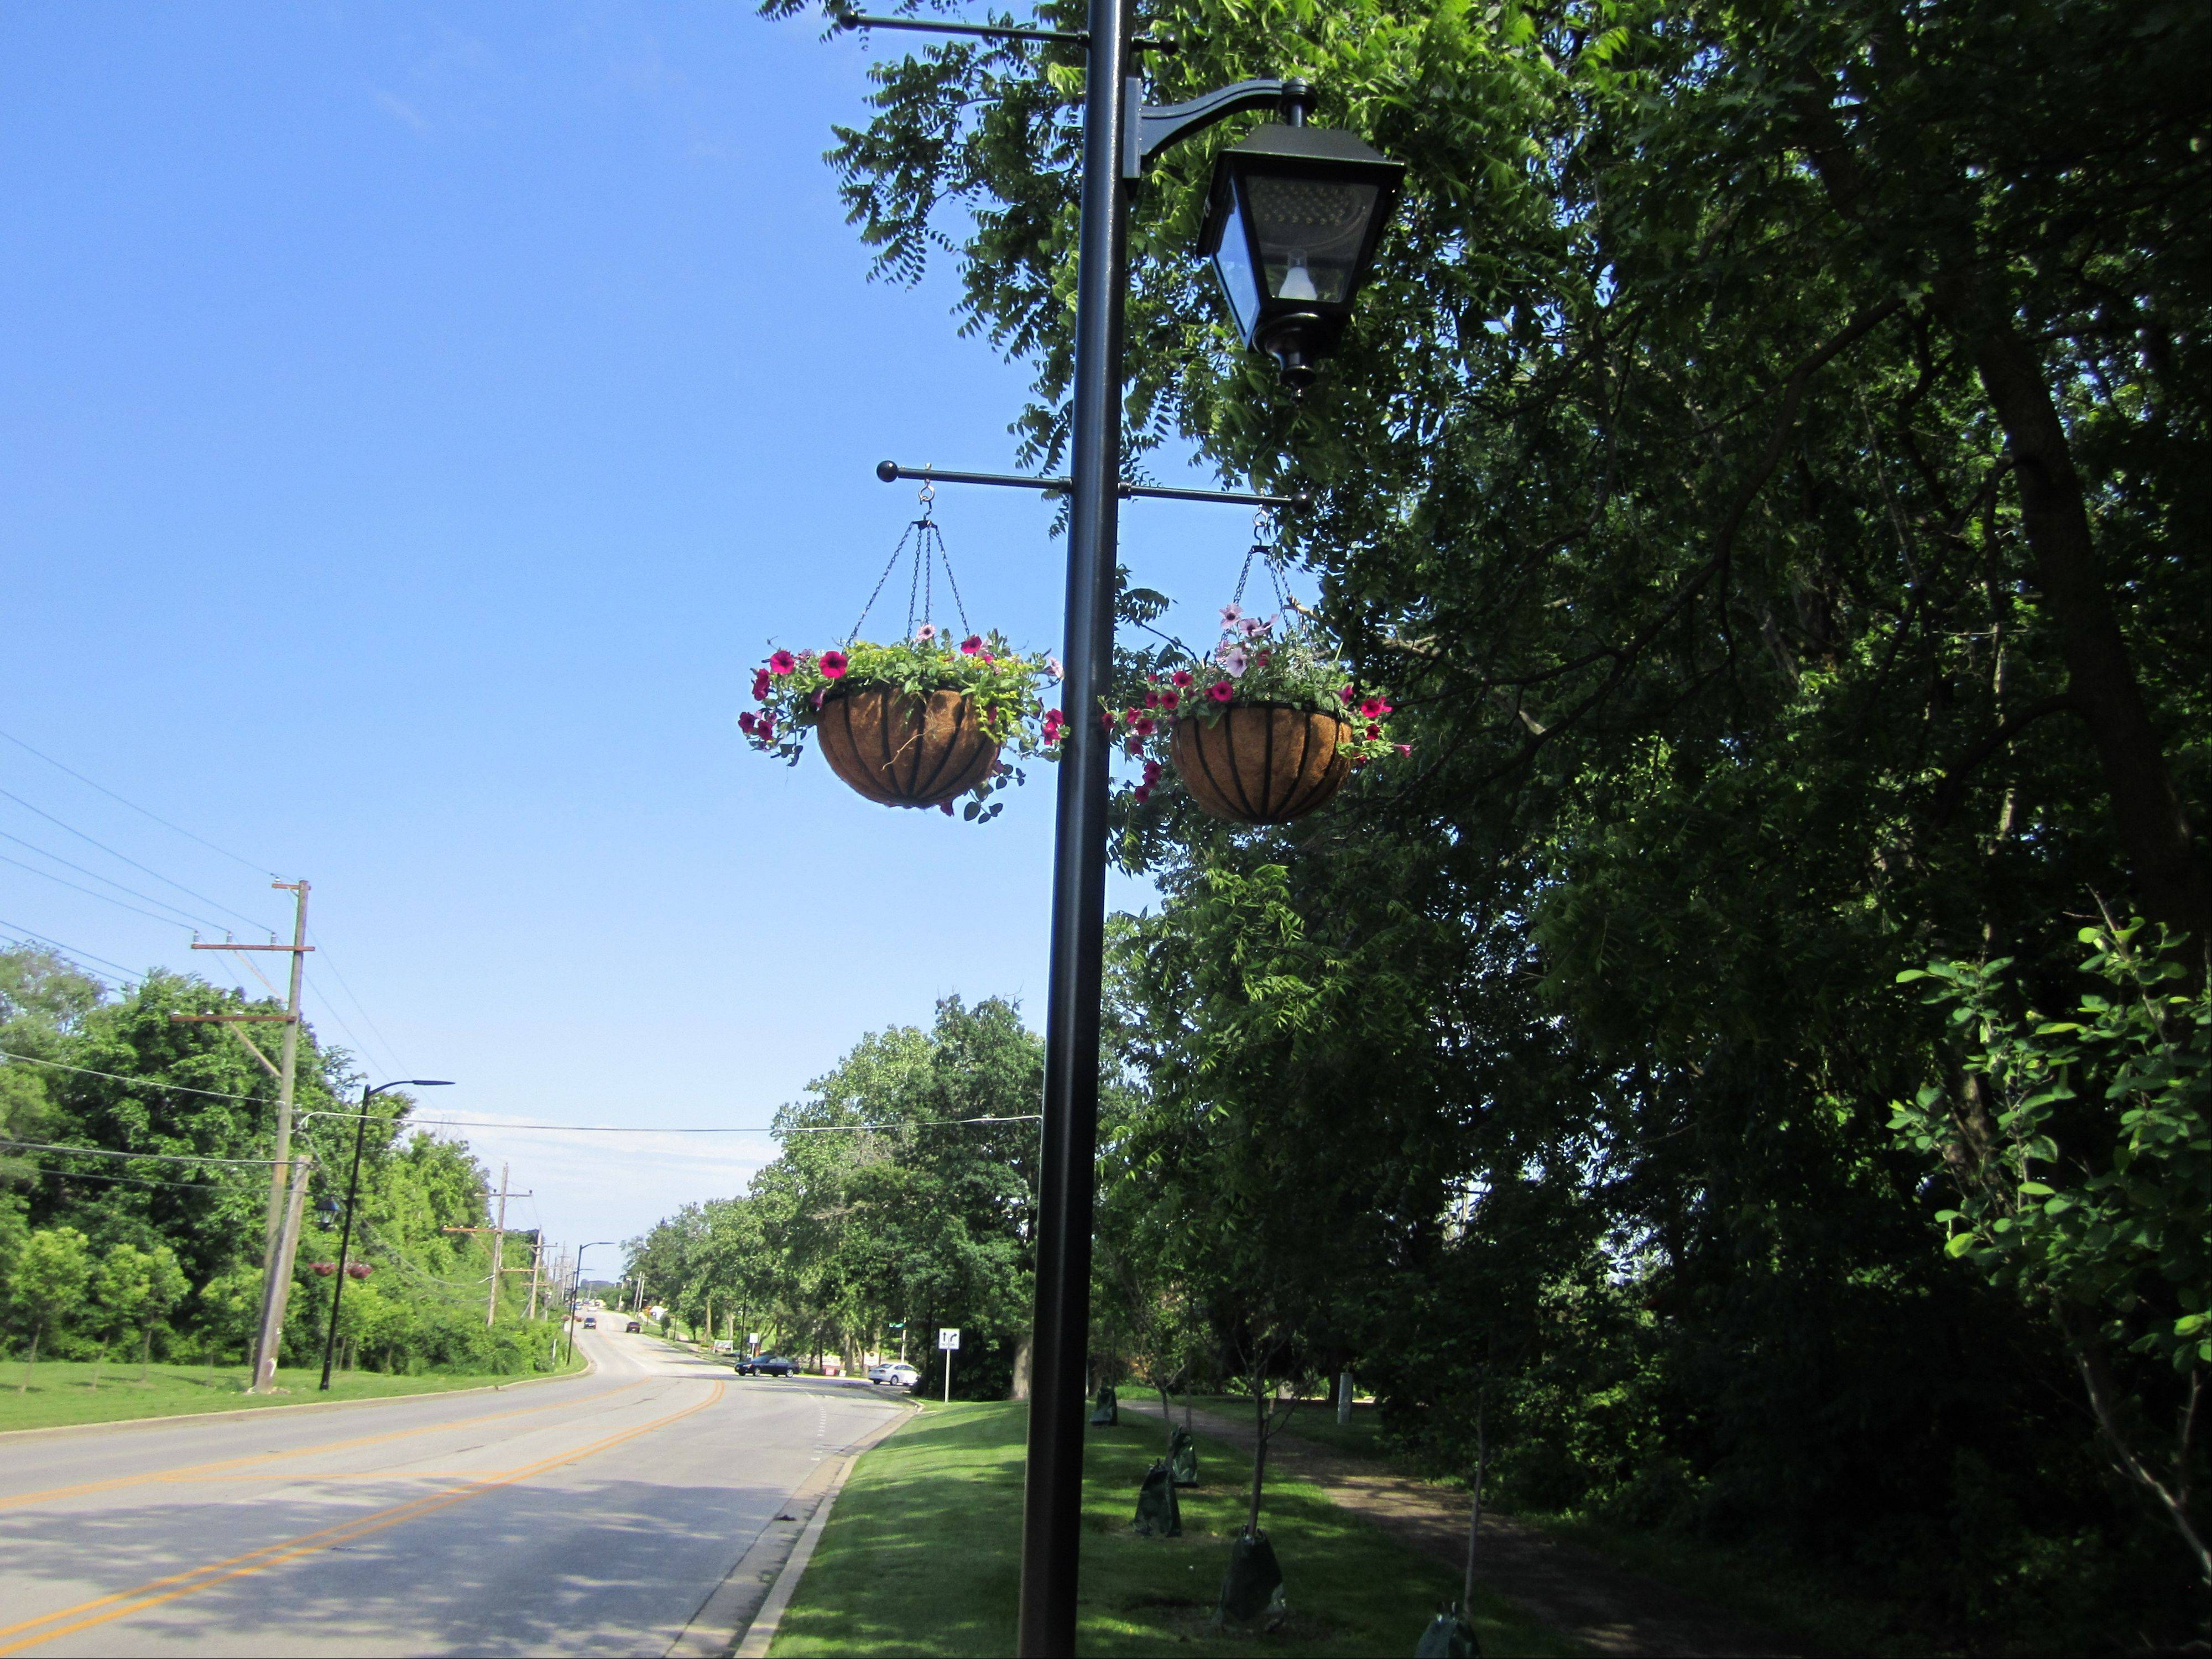 Bartlett has spent more than $800,000 upgrading the streetscape on West Bartlett Road to create an inviting entrance to the downtown. This shows the flower baskets that are part of new streetlights.